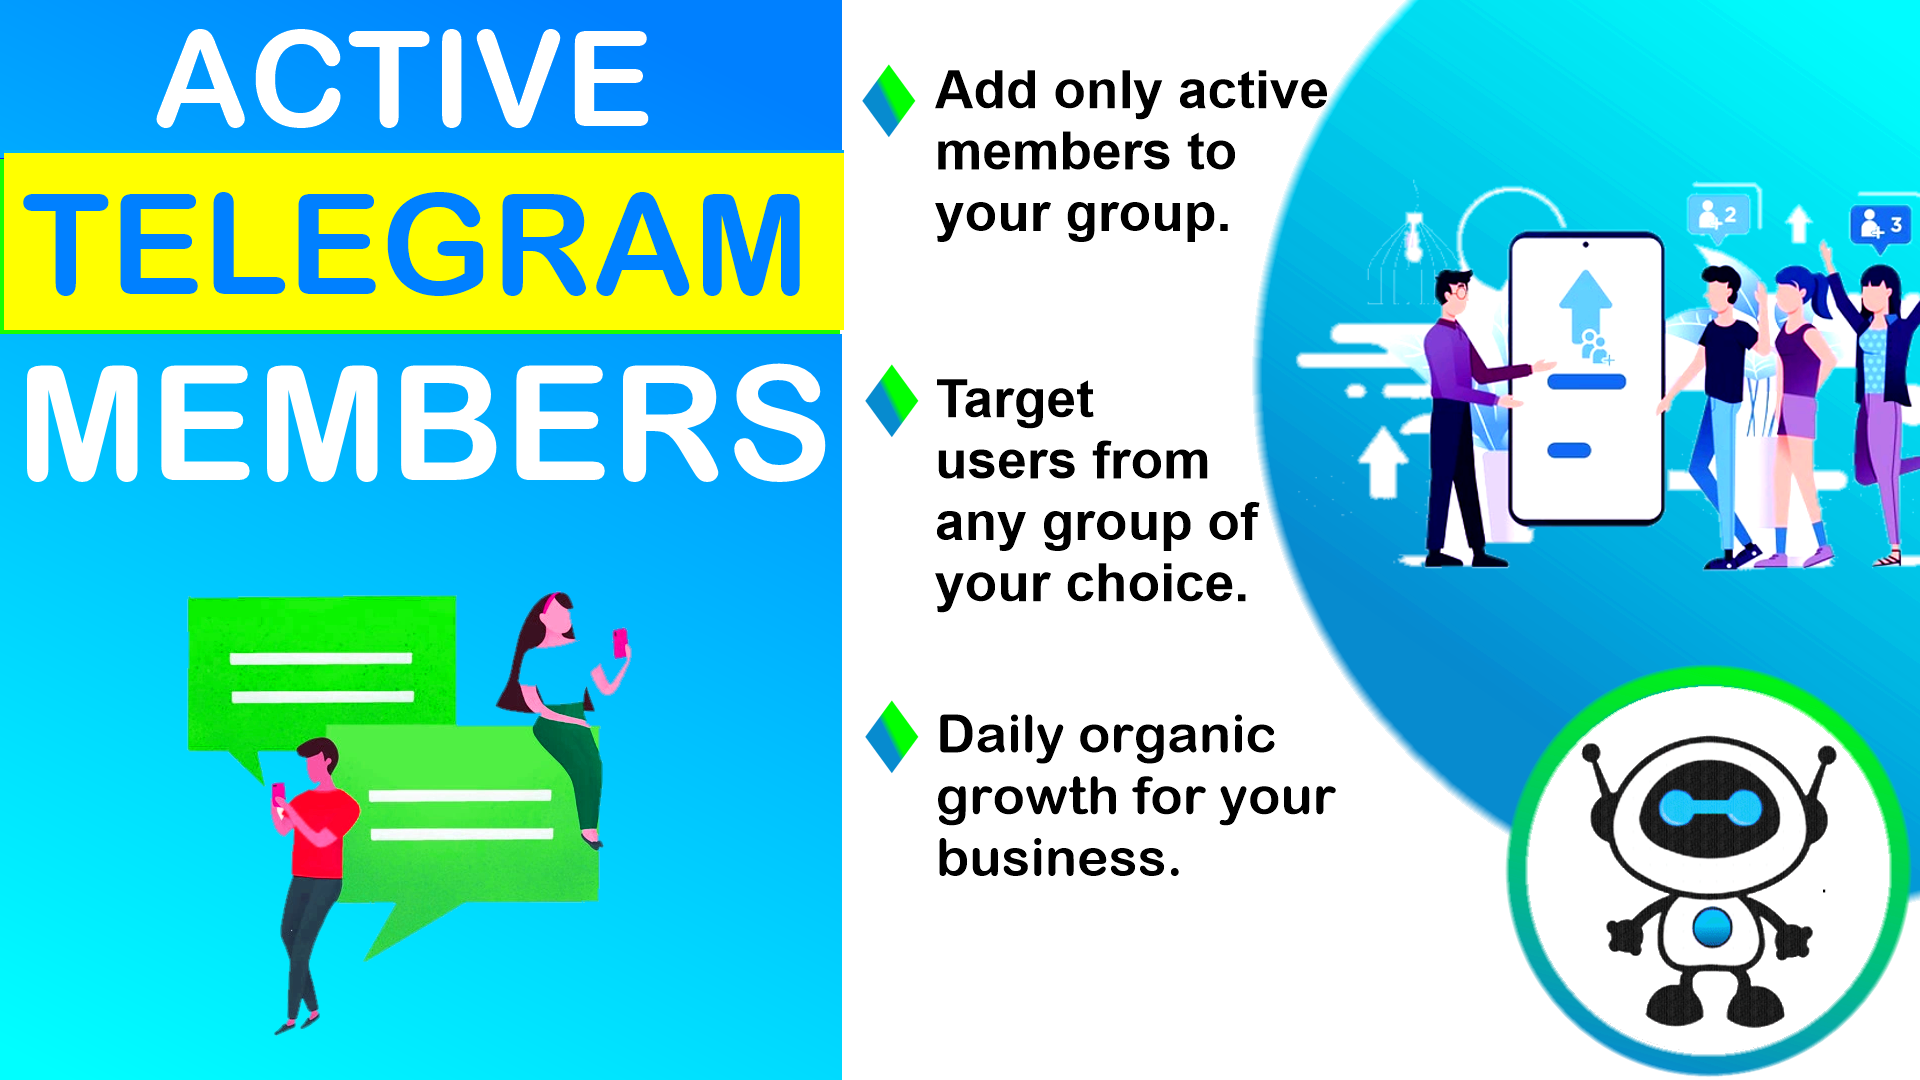 Instantly add 150 Active Telegram users from any GR0UP of your choice to your GR0UP - no bots